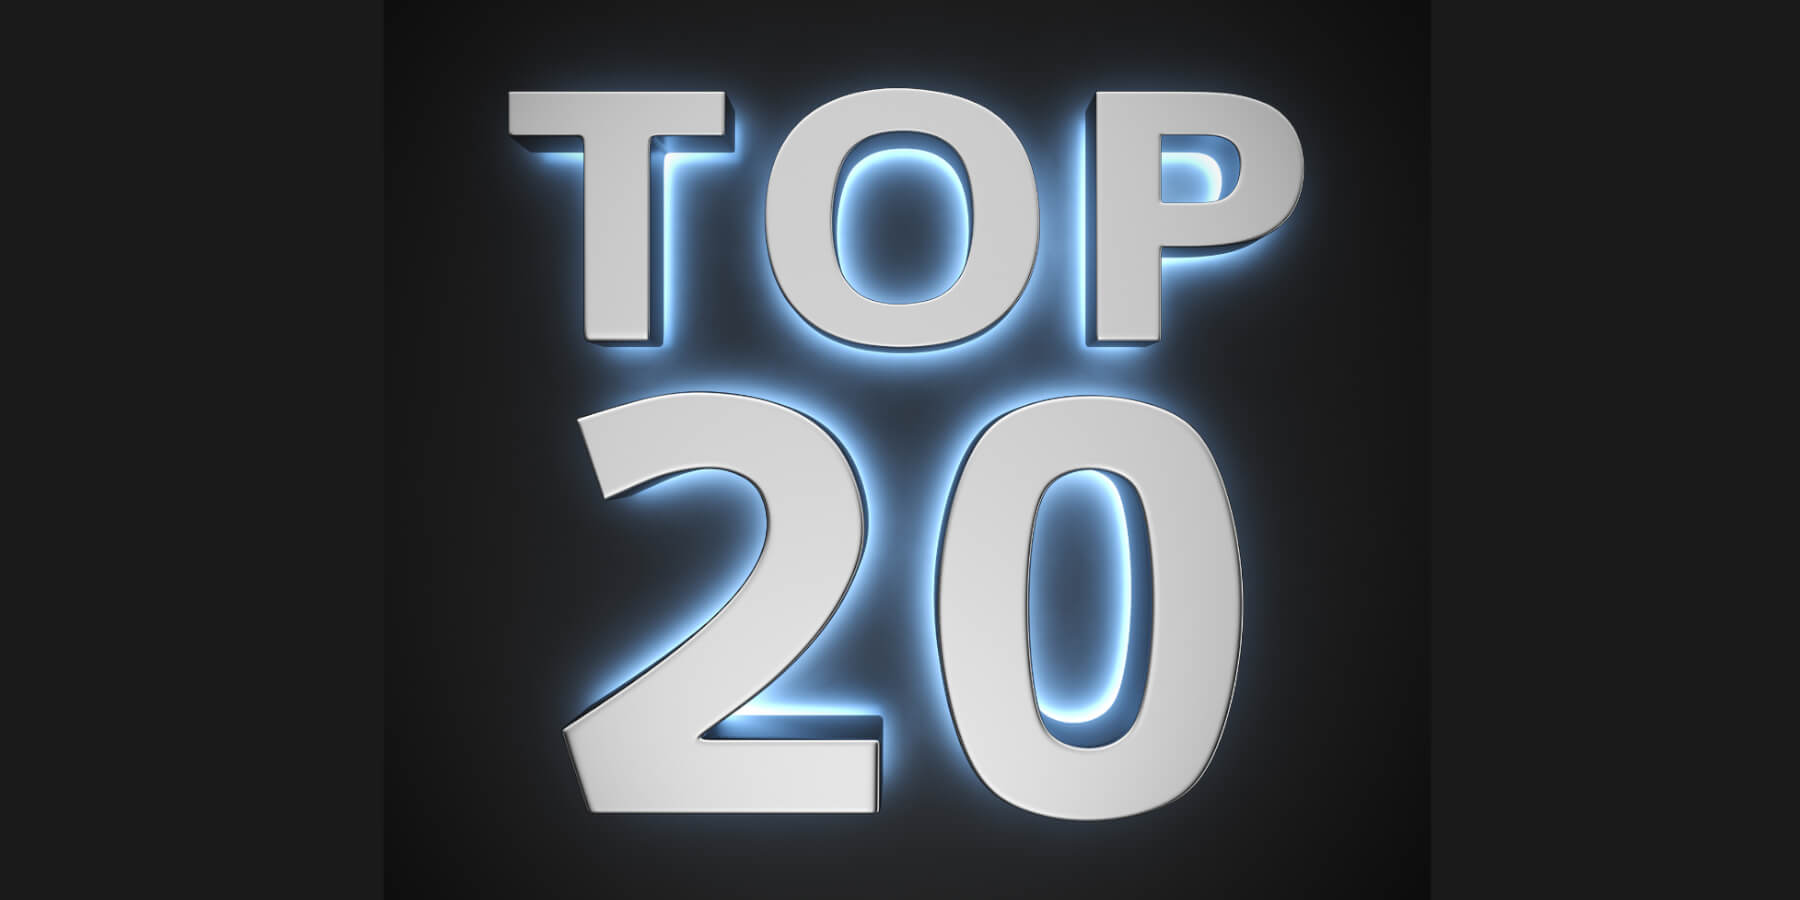 Top 20 radiators for my home in 2020